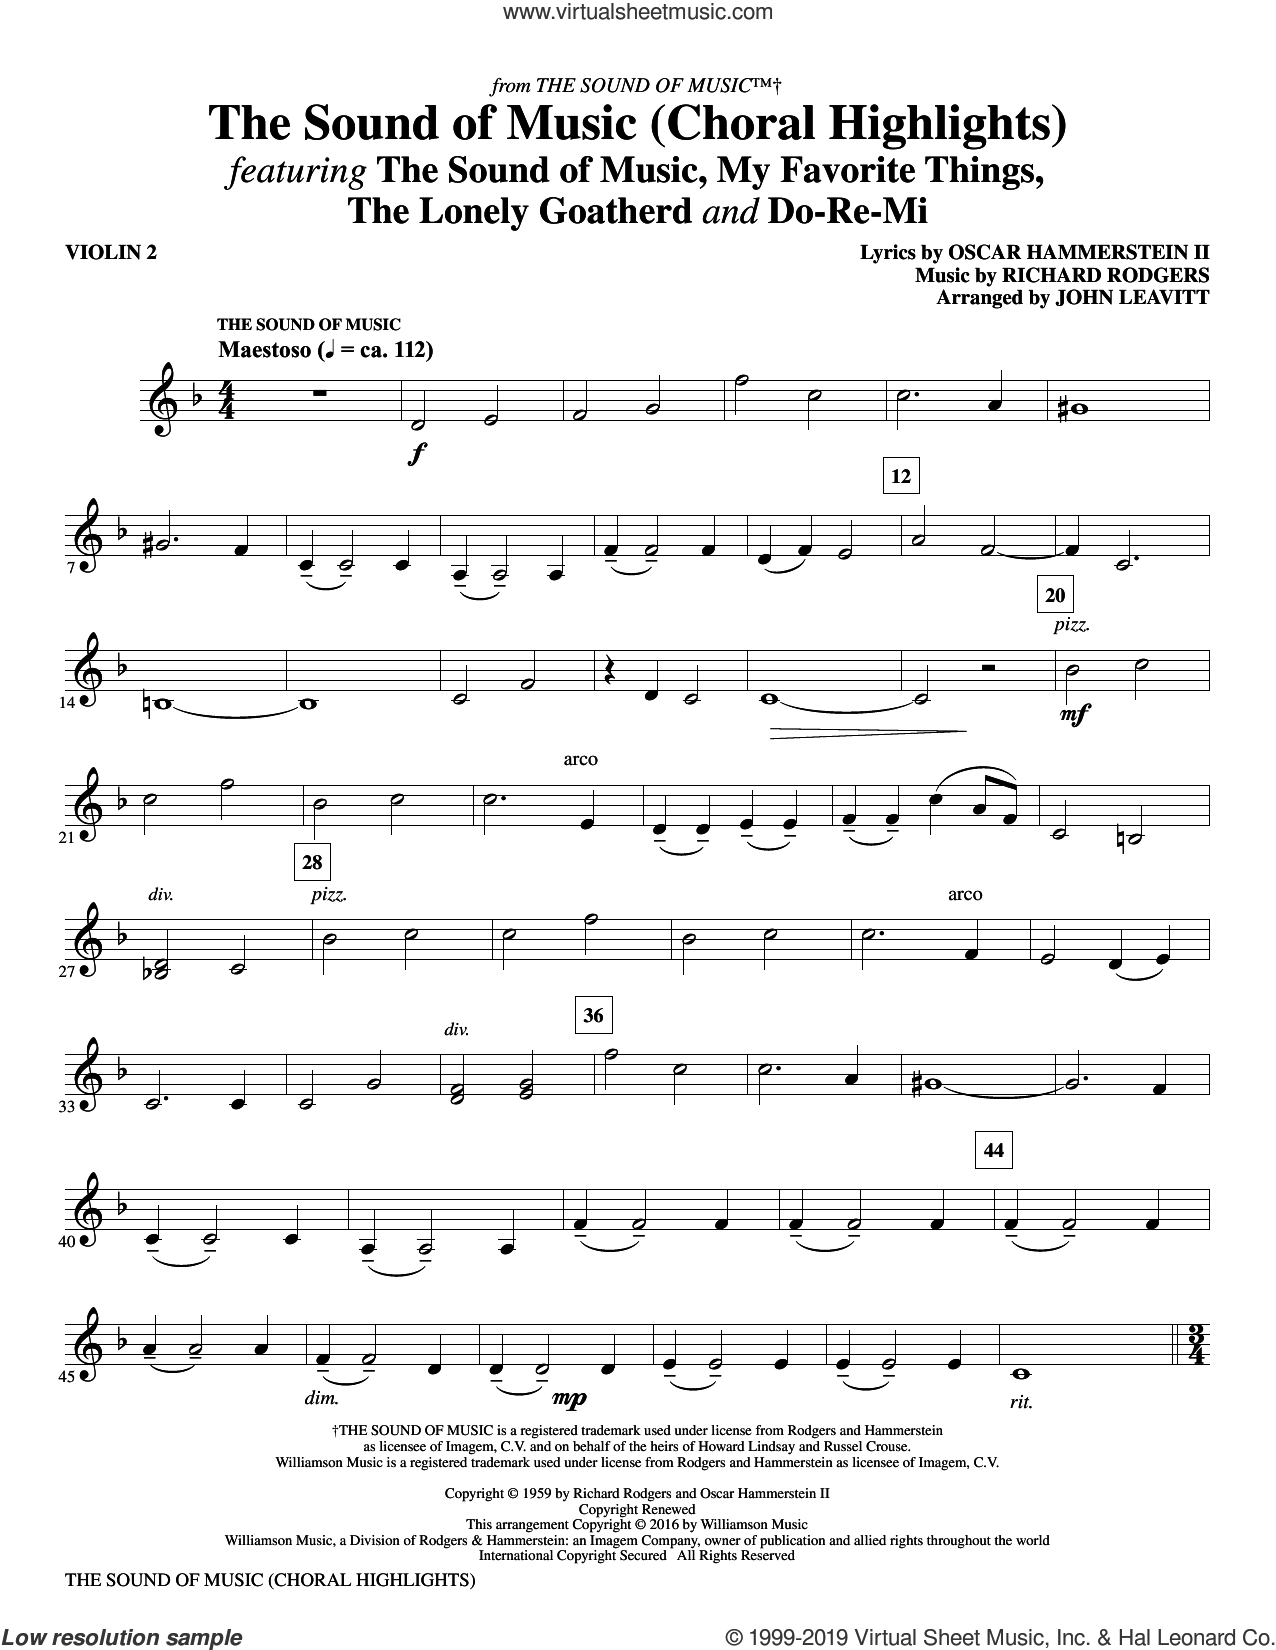 The Sound Of Music (Choral Highlights) (arr. John Leavitt) sheet music for orchestra/band (violin 2) by Rodgers & Hammerstein, John Leavitt, Oscar II Hammerstein and Richard Rodgers, intermediate skill level